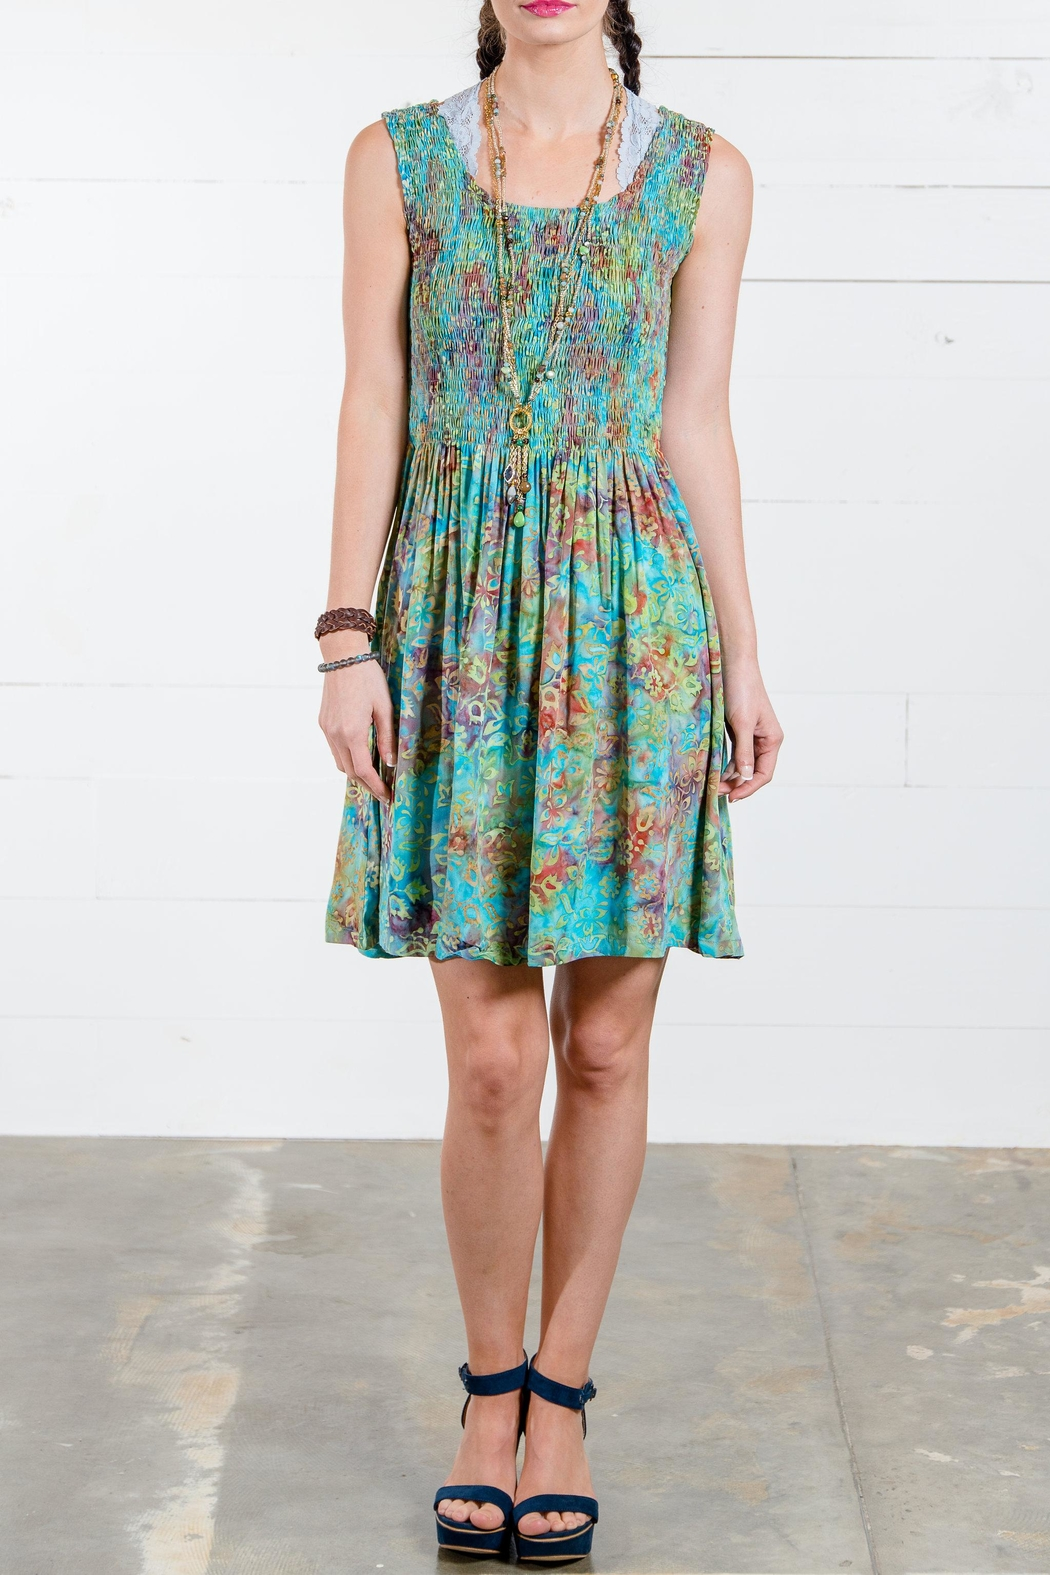 Go fish clothing floral dress from florida by go fish for Go fish clothing